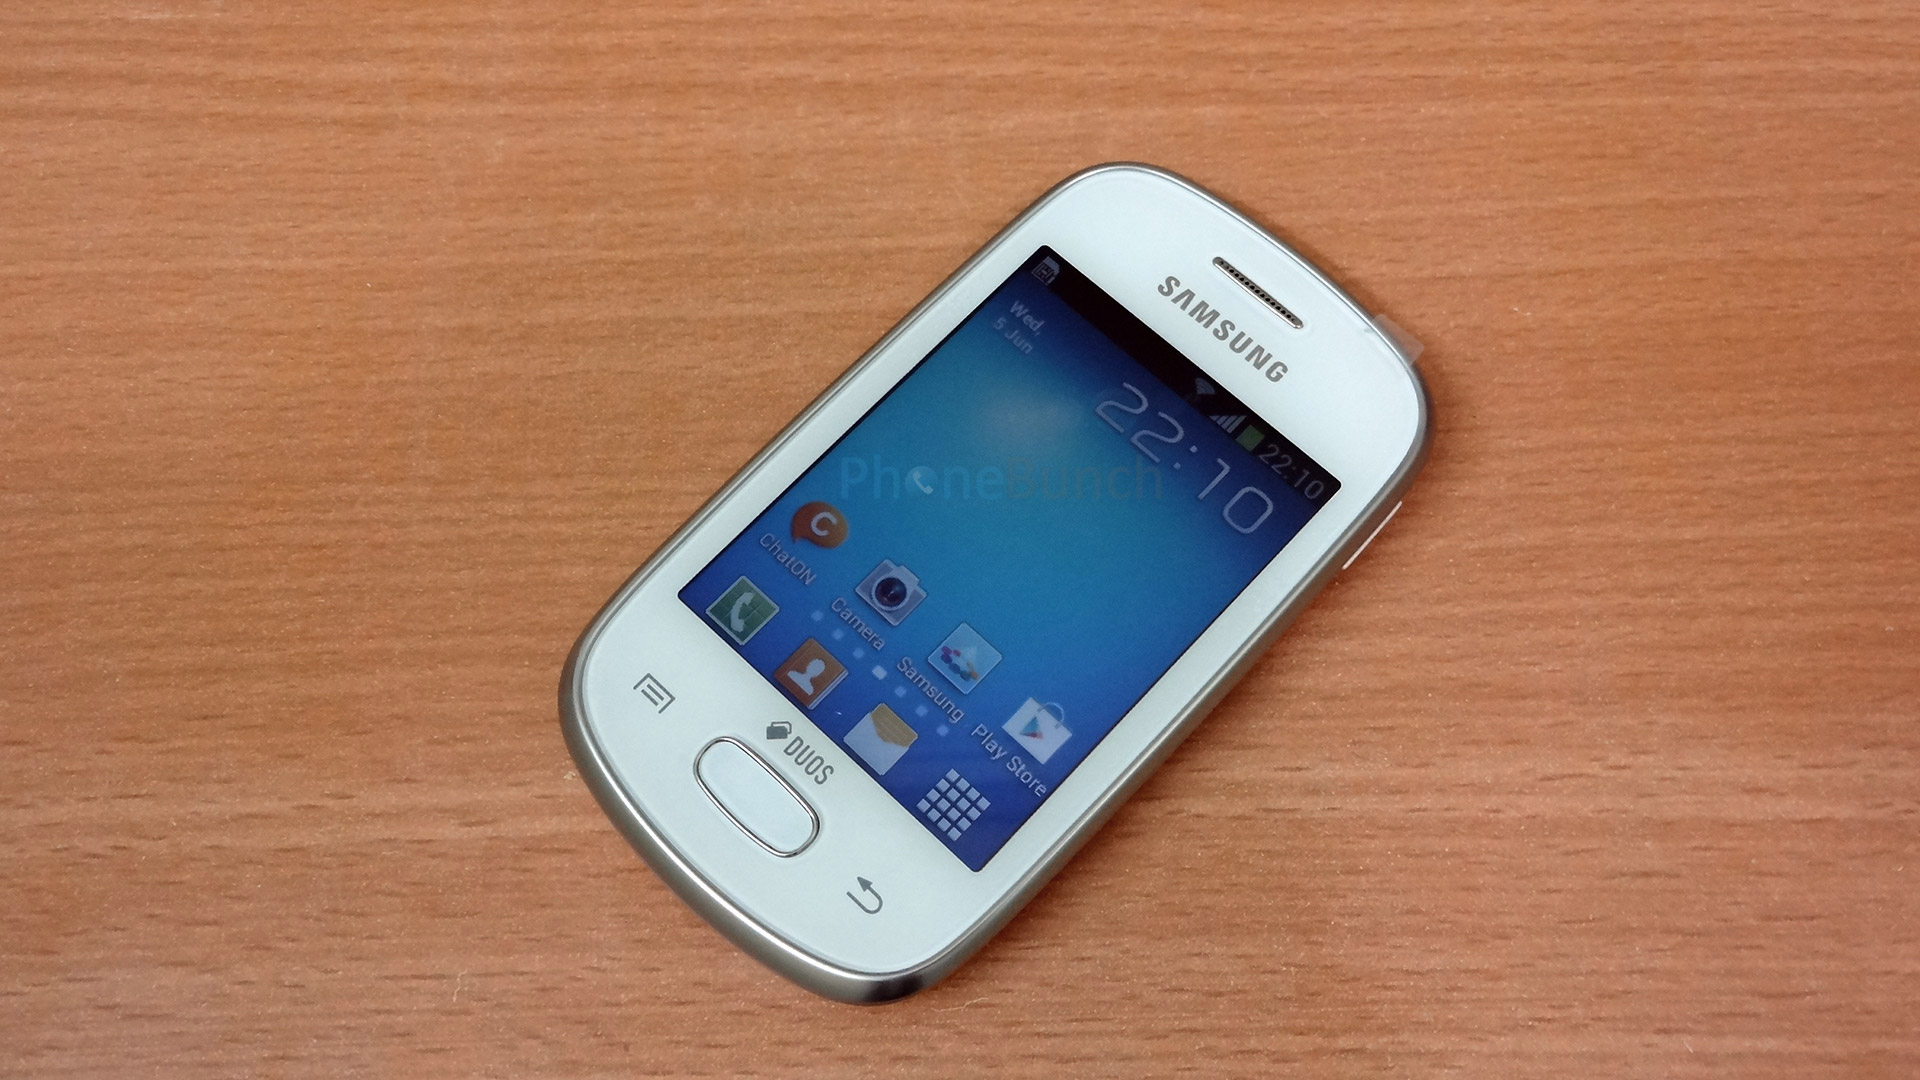 samsung galaxy star s5282 - photo #8